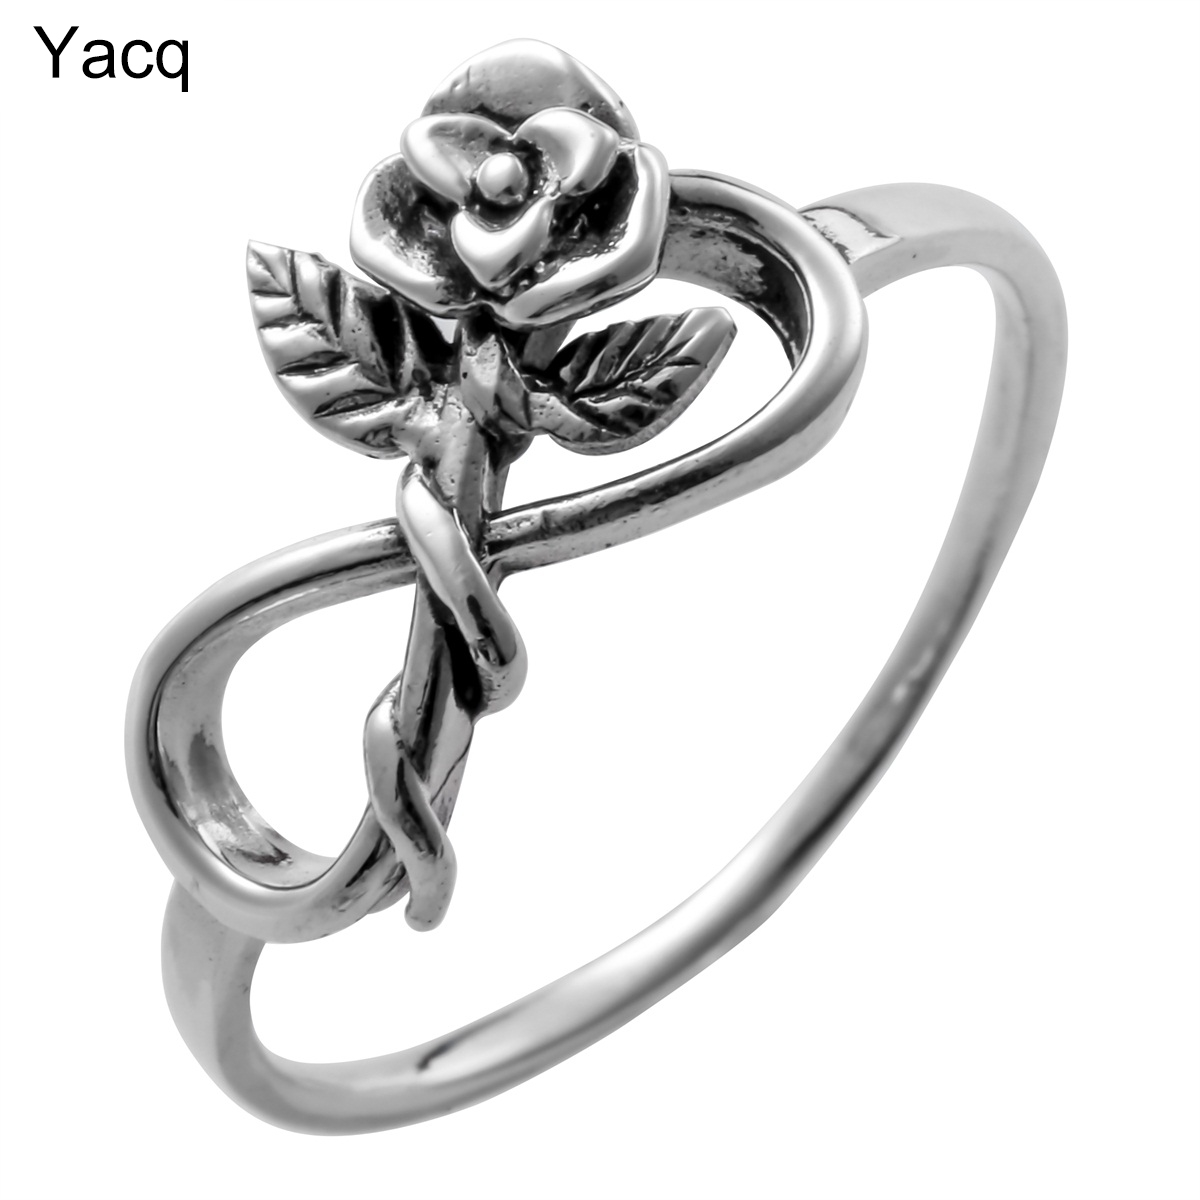 YACQ 925 Sterling Silver Flower Leaf Ring Birthday Party Jewelry Gifts For Women Girlfriend Her